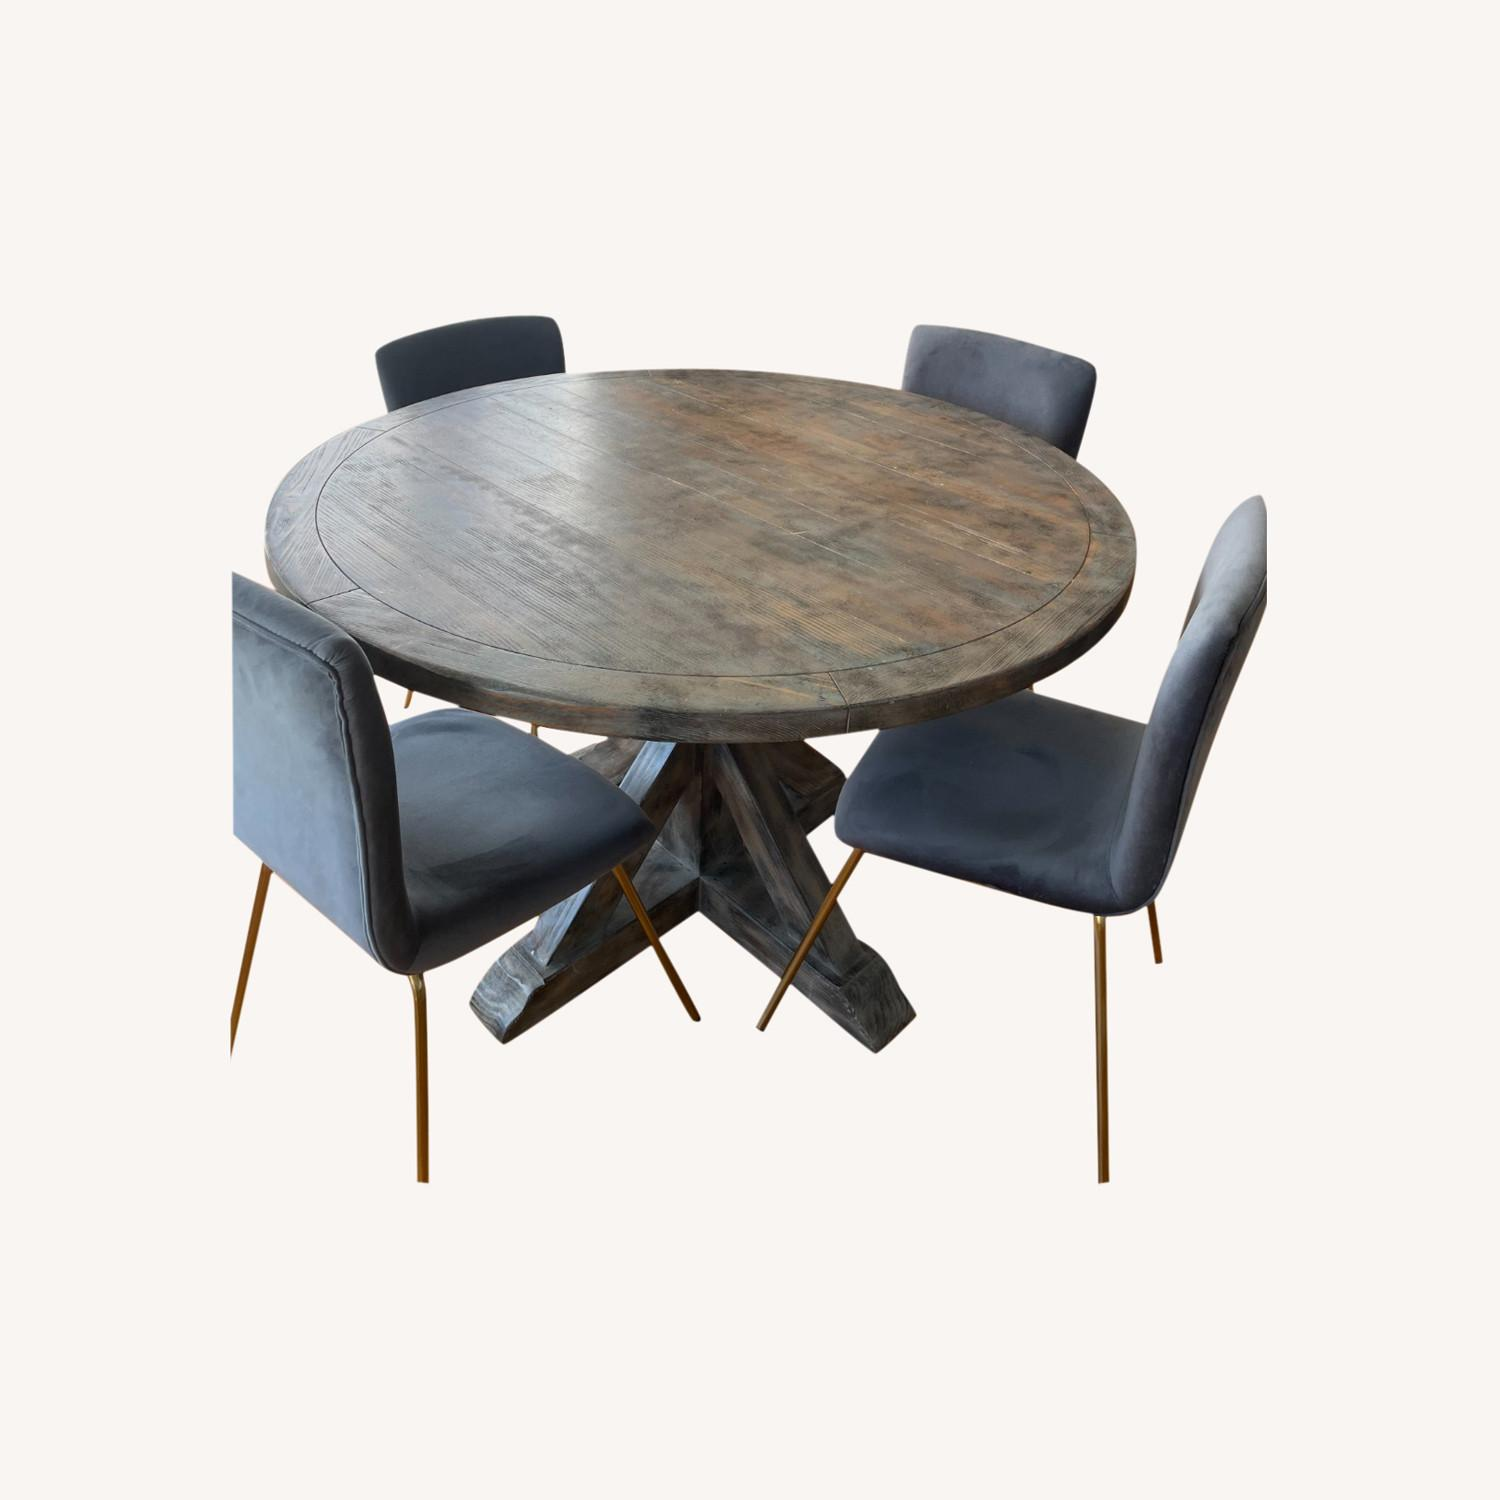 Reclaimed Wood Dining Table & 4 Dining Chairs - image-0